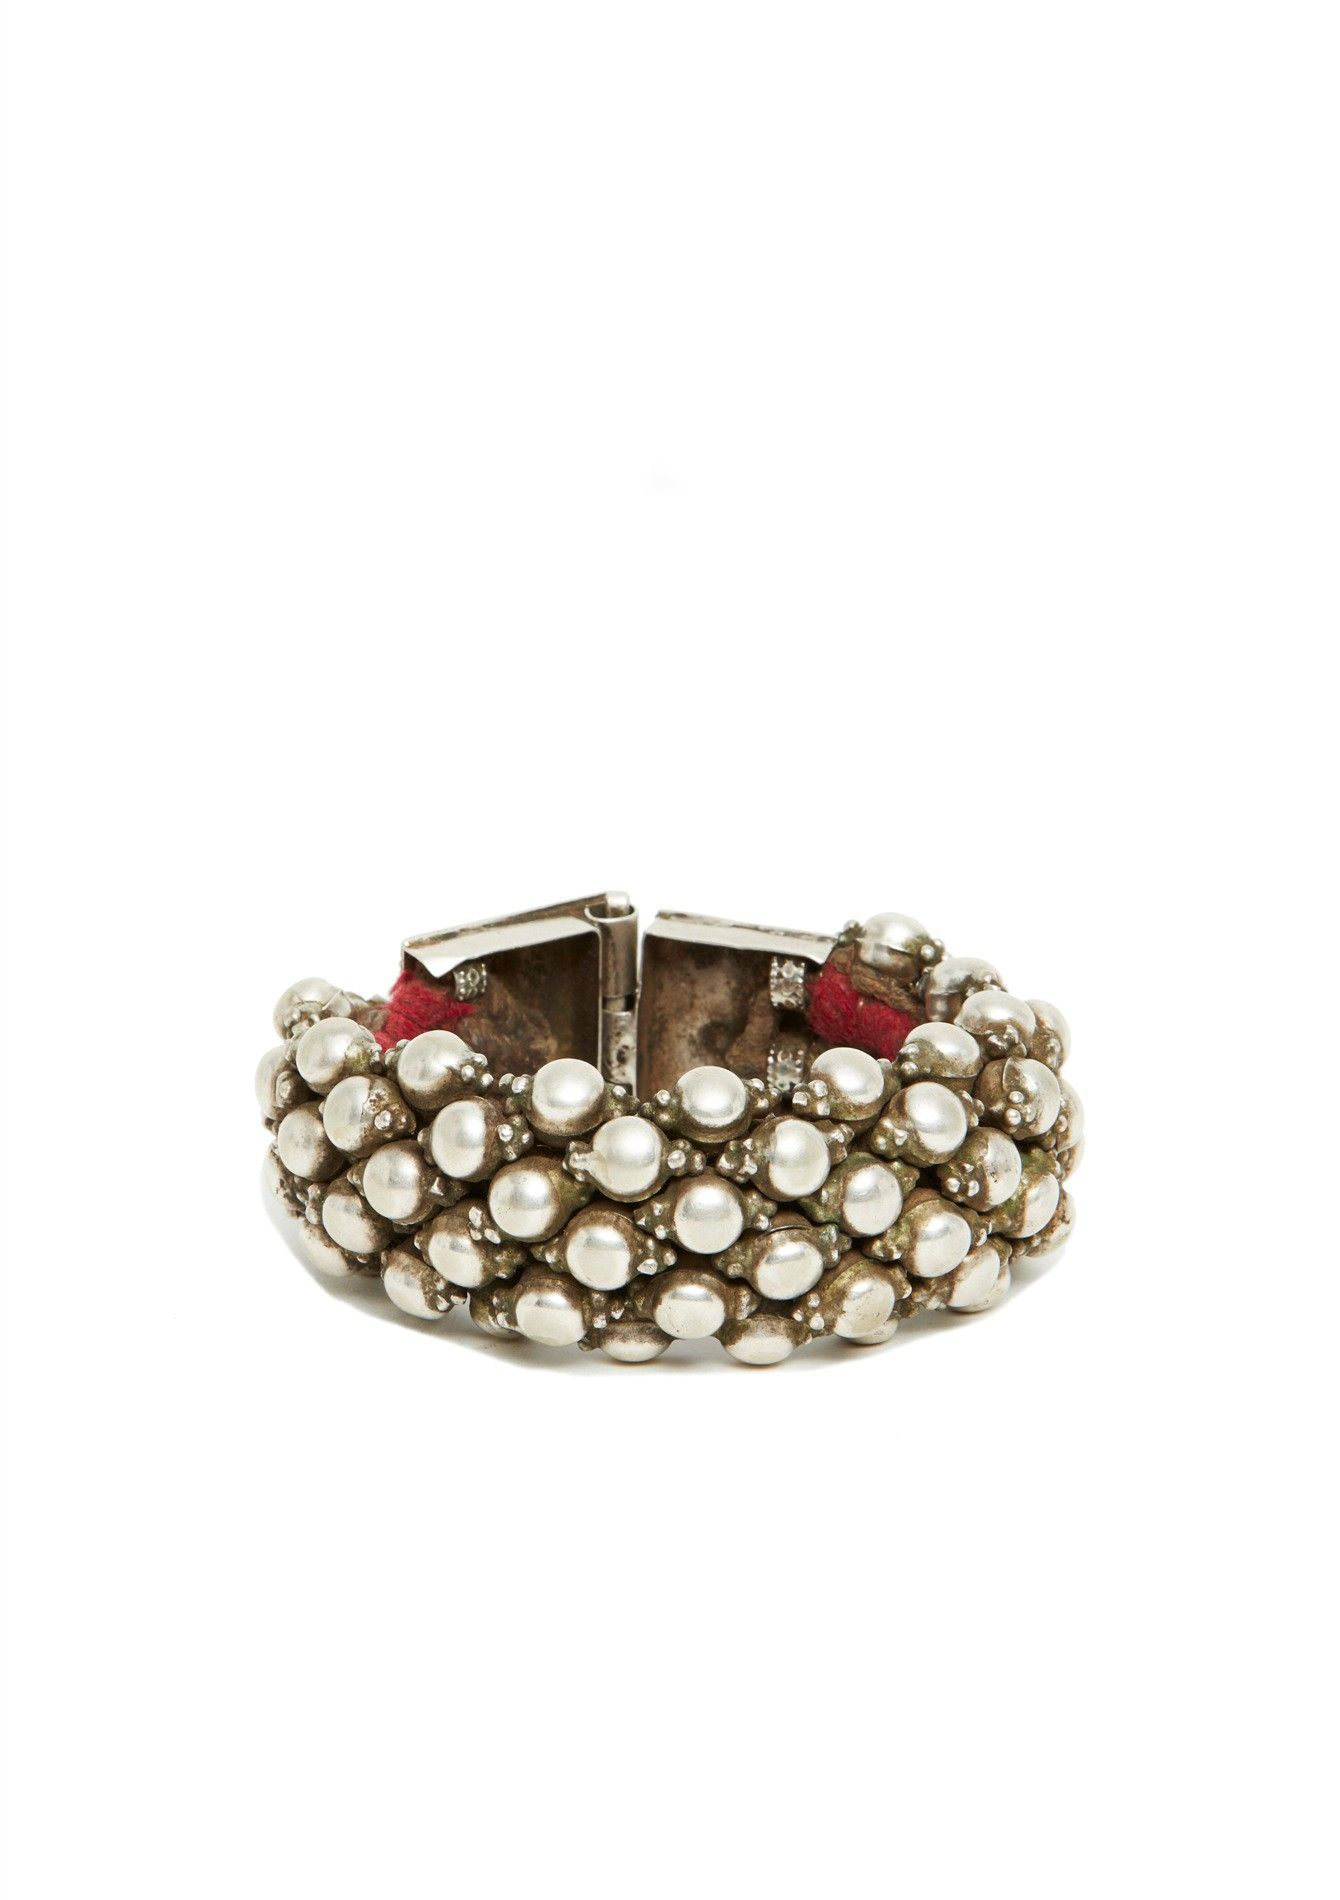 """Antique silver-plated women's bracelet with intricate dome design and square hinged clasp lined with a woven leather strap. Necessary for a well-rounded wardrobe! 1.25"""" width. As common with antique one-of-a-kind pieces, there may be irregularities or imperfections."""